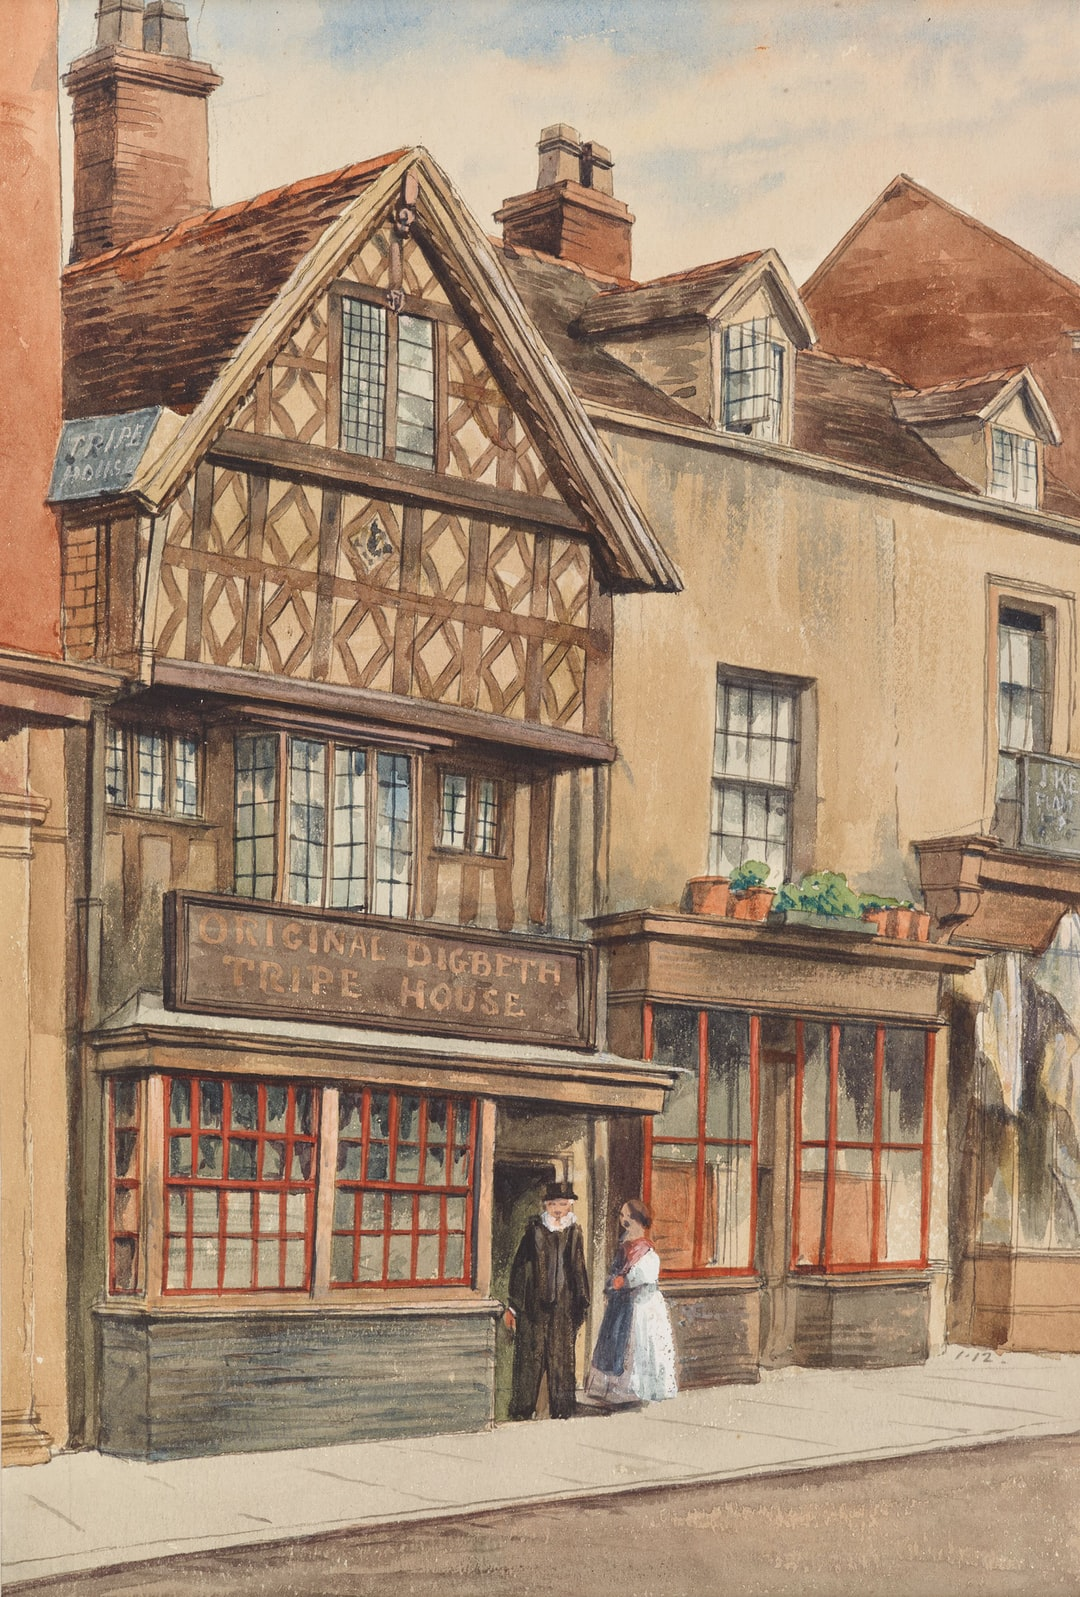 Original Digbeth Tripe House, Birmingham. By Allen Edward Everitt (1824-1882) * View of Well Street, Digbeth, Birmingham